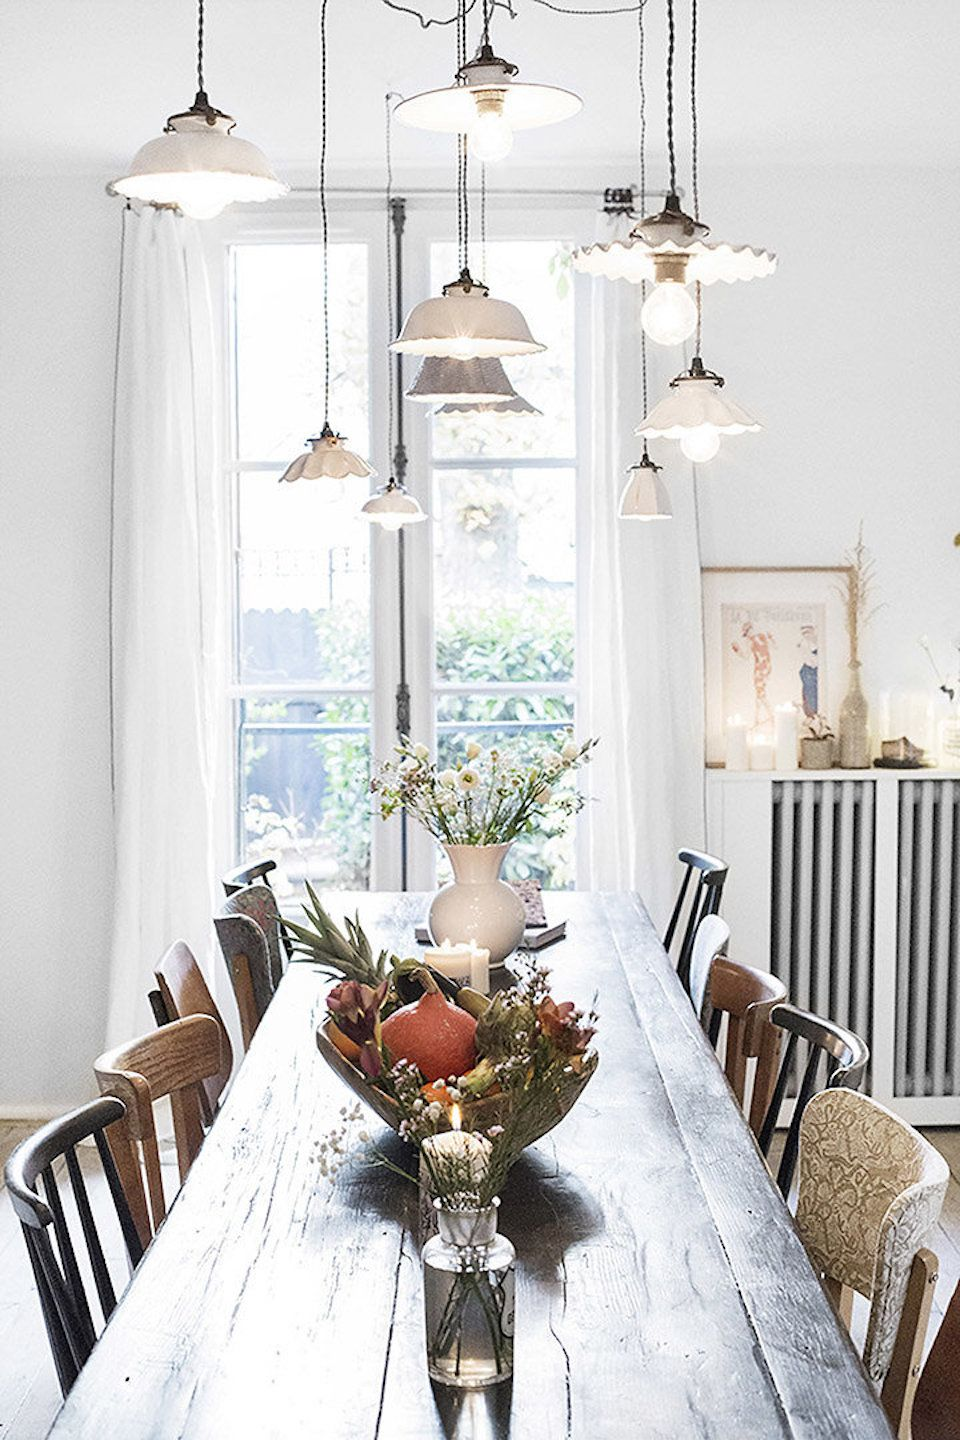 La maison my little paris en 2019 interior decoration salle manger eclectique salle - La salle a manger paris ...